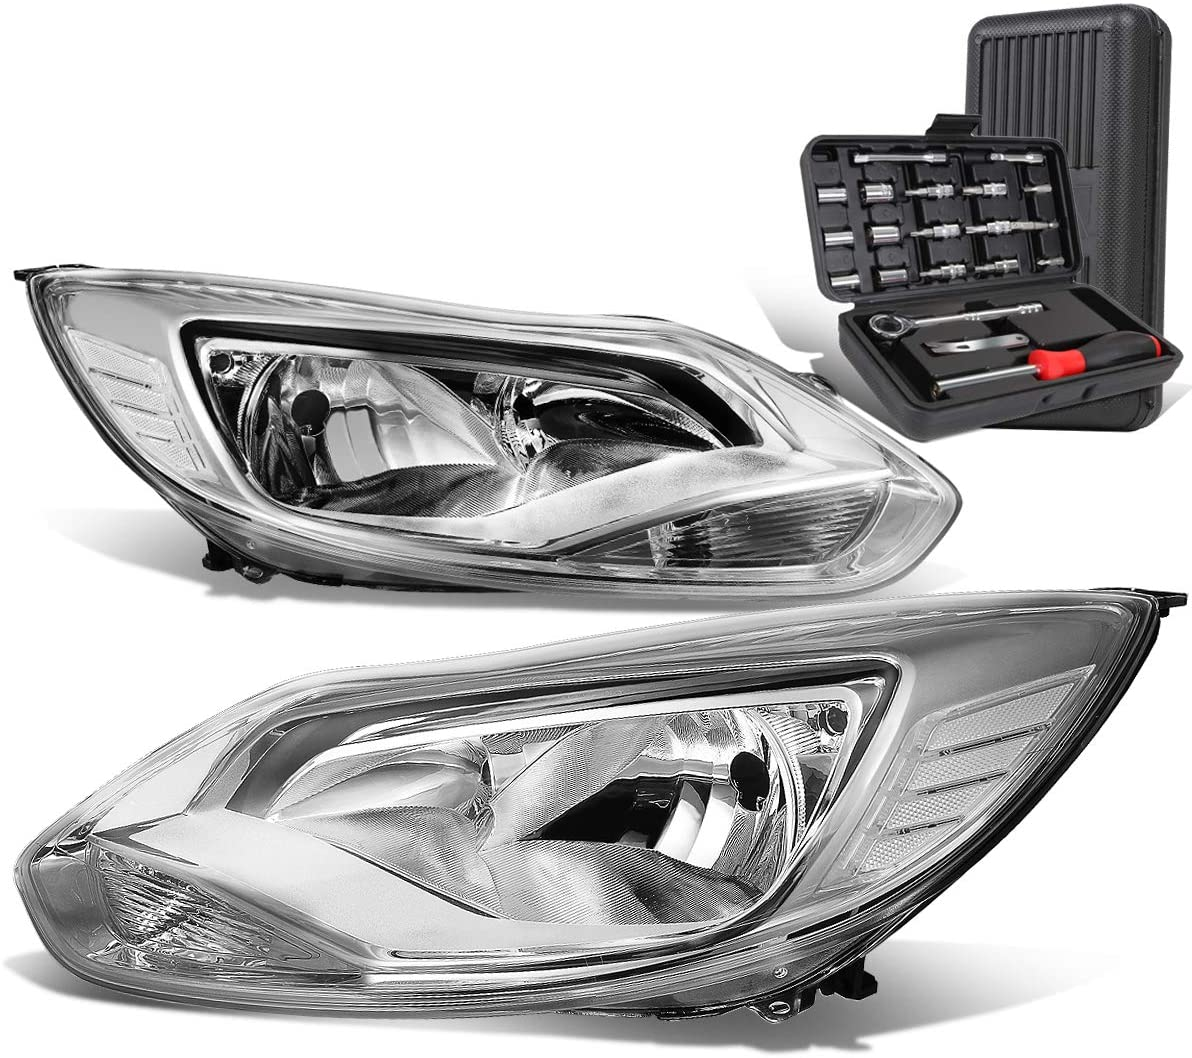 Chrome Housing Clear Corner Headlight Head Lamps+Tool Kit Replacement for Ford Focus 12-14